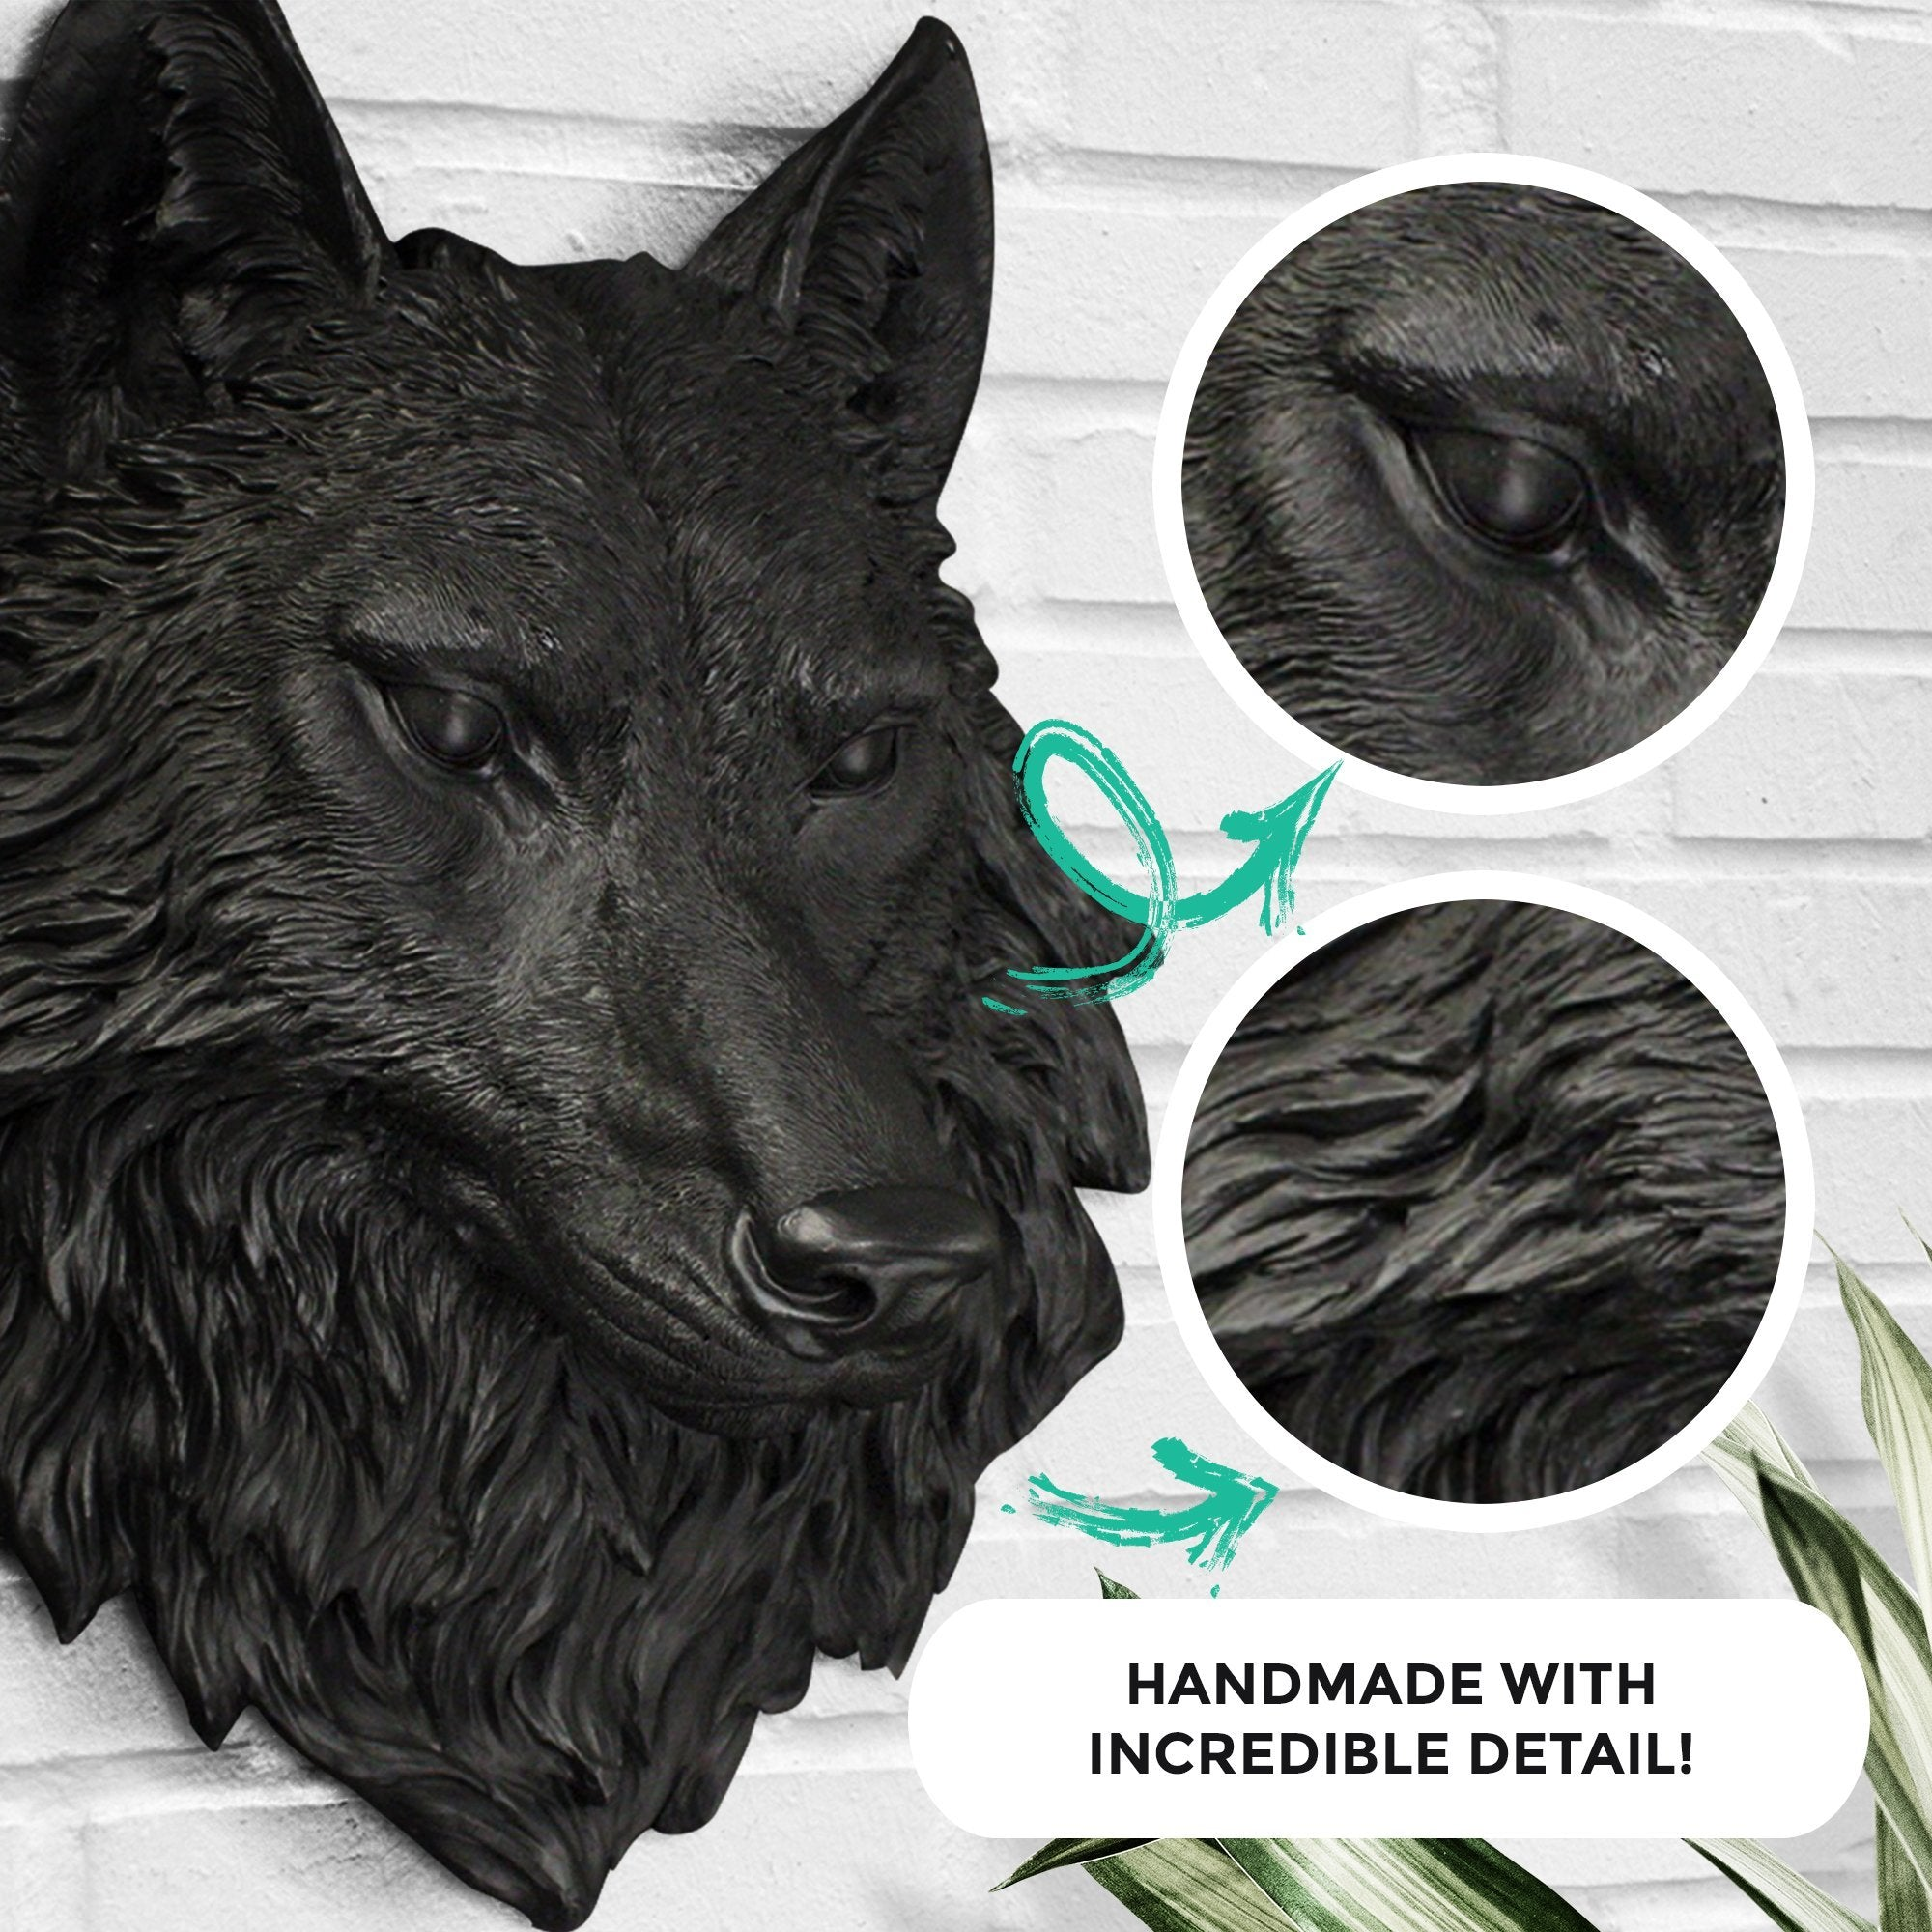 Faux wolf, faux wolf, fake wolf head, animal head wall mount, farmhouse decor